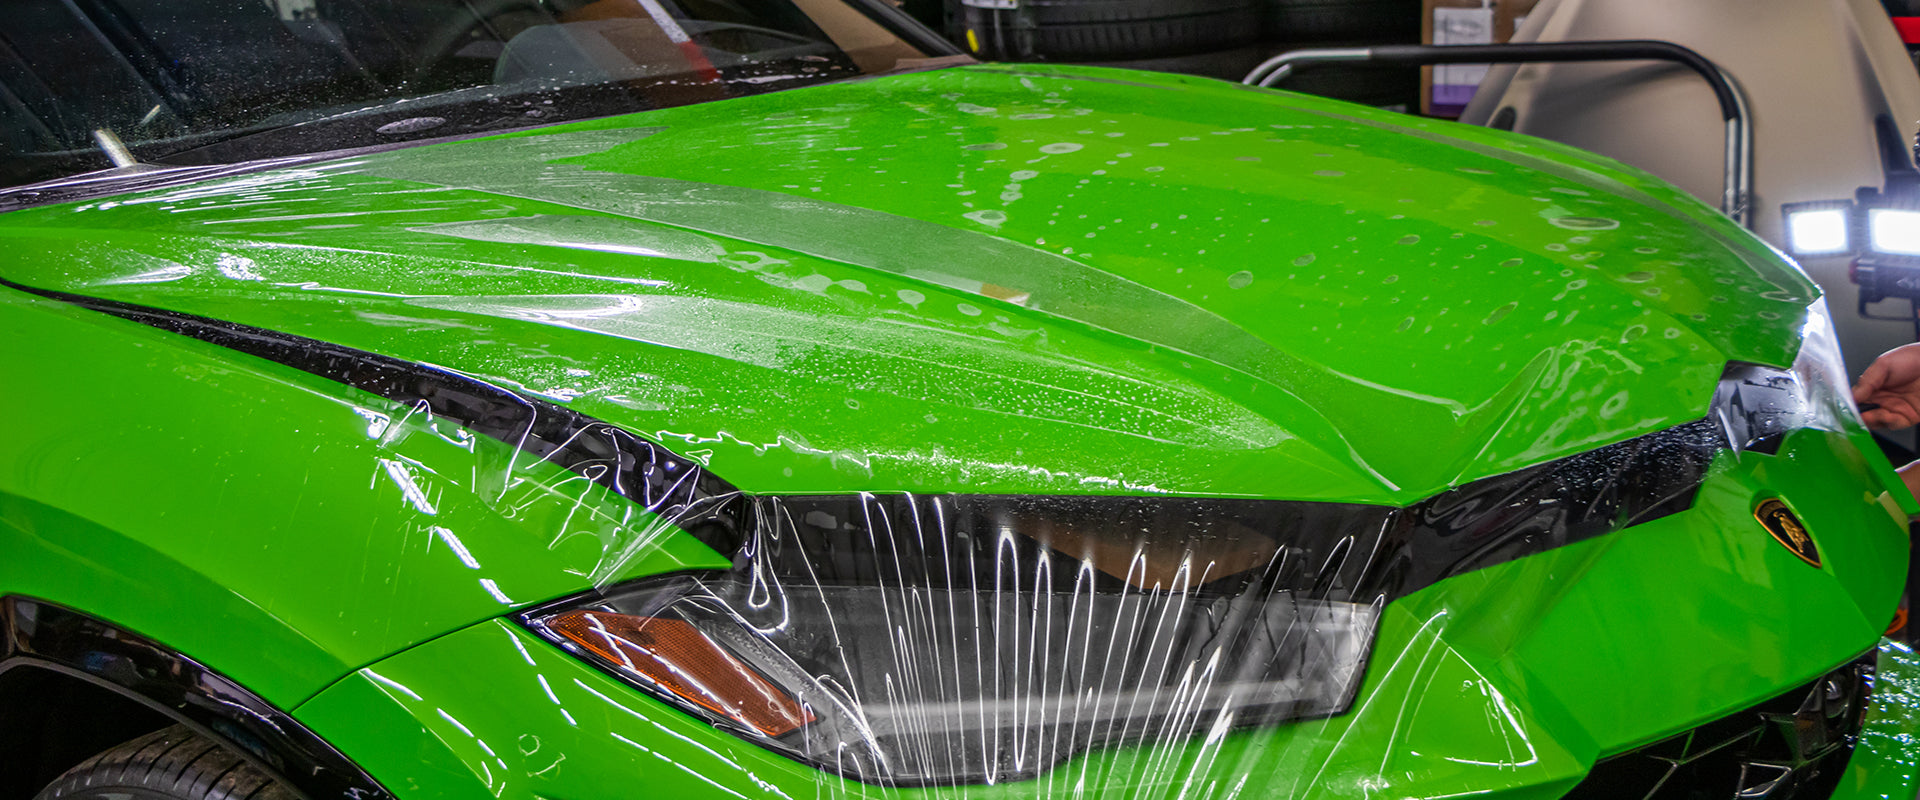 Paint Protection Film Luxury Exotic Sports- Cars